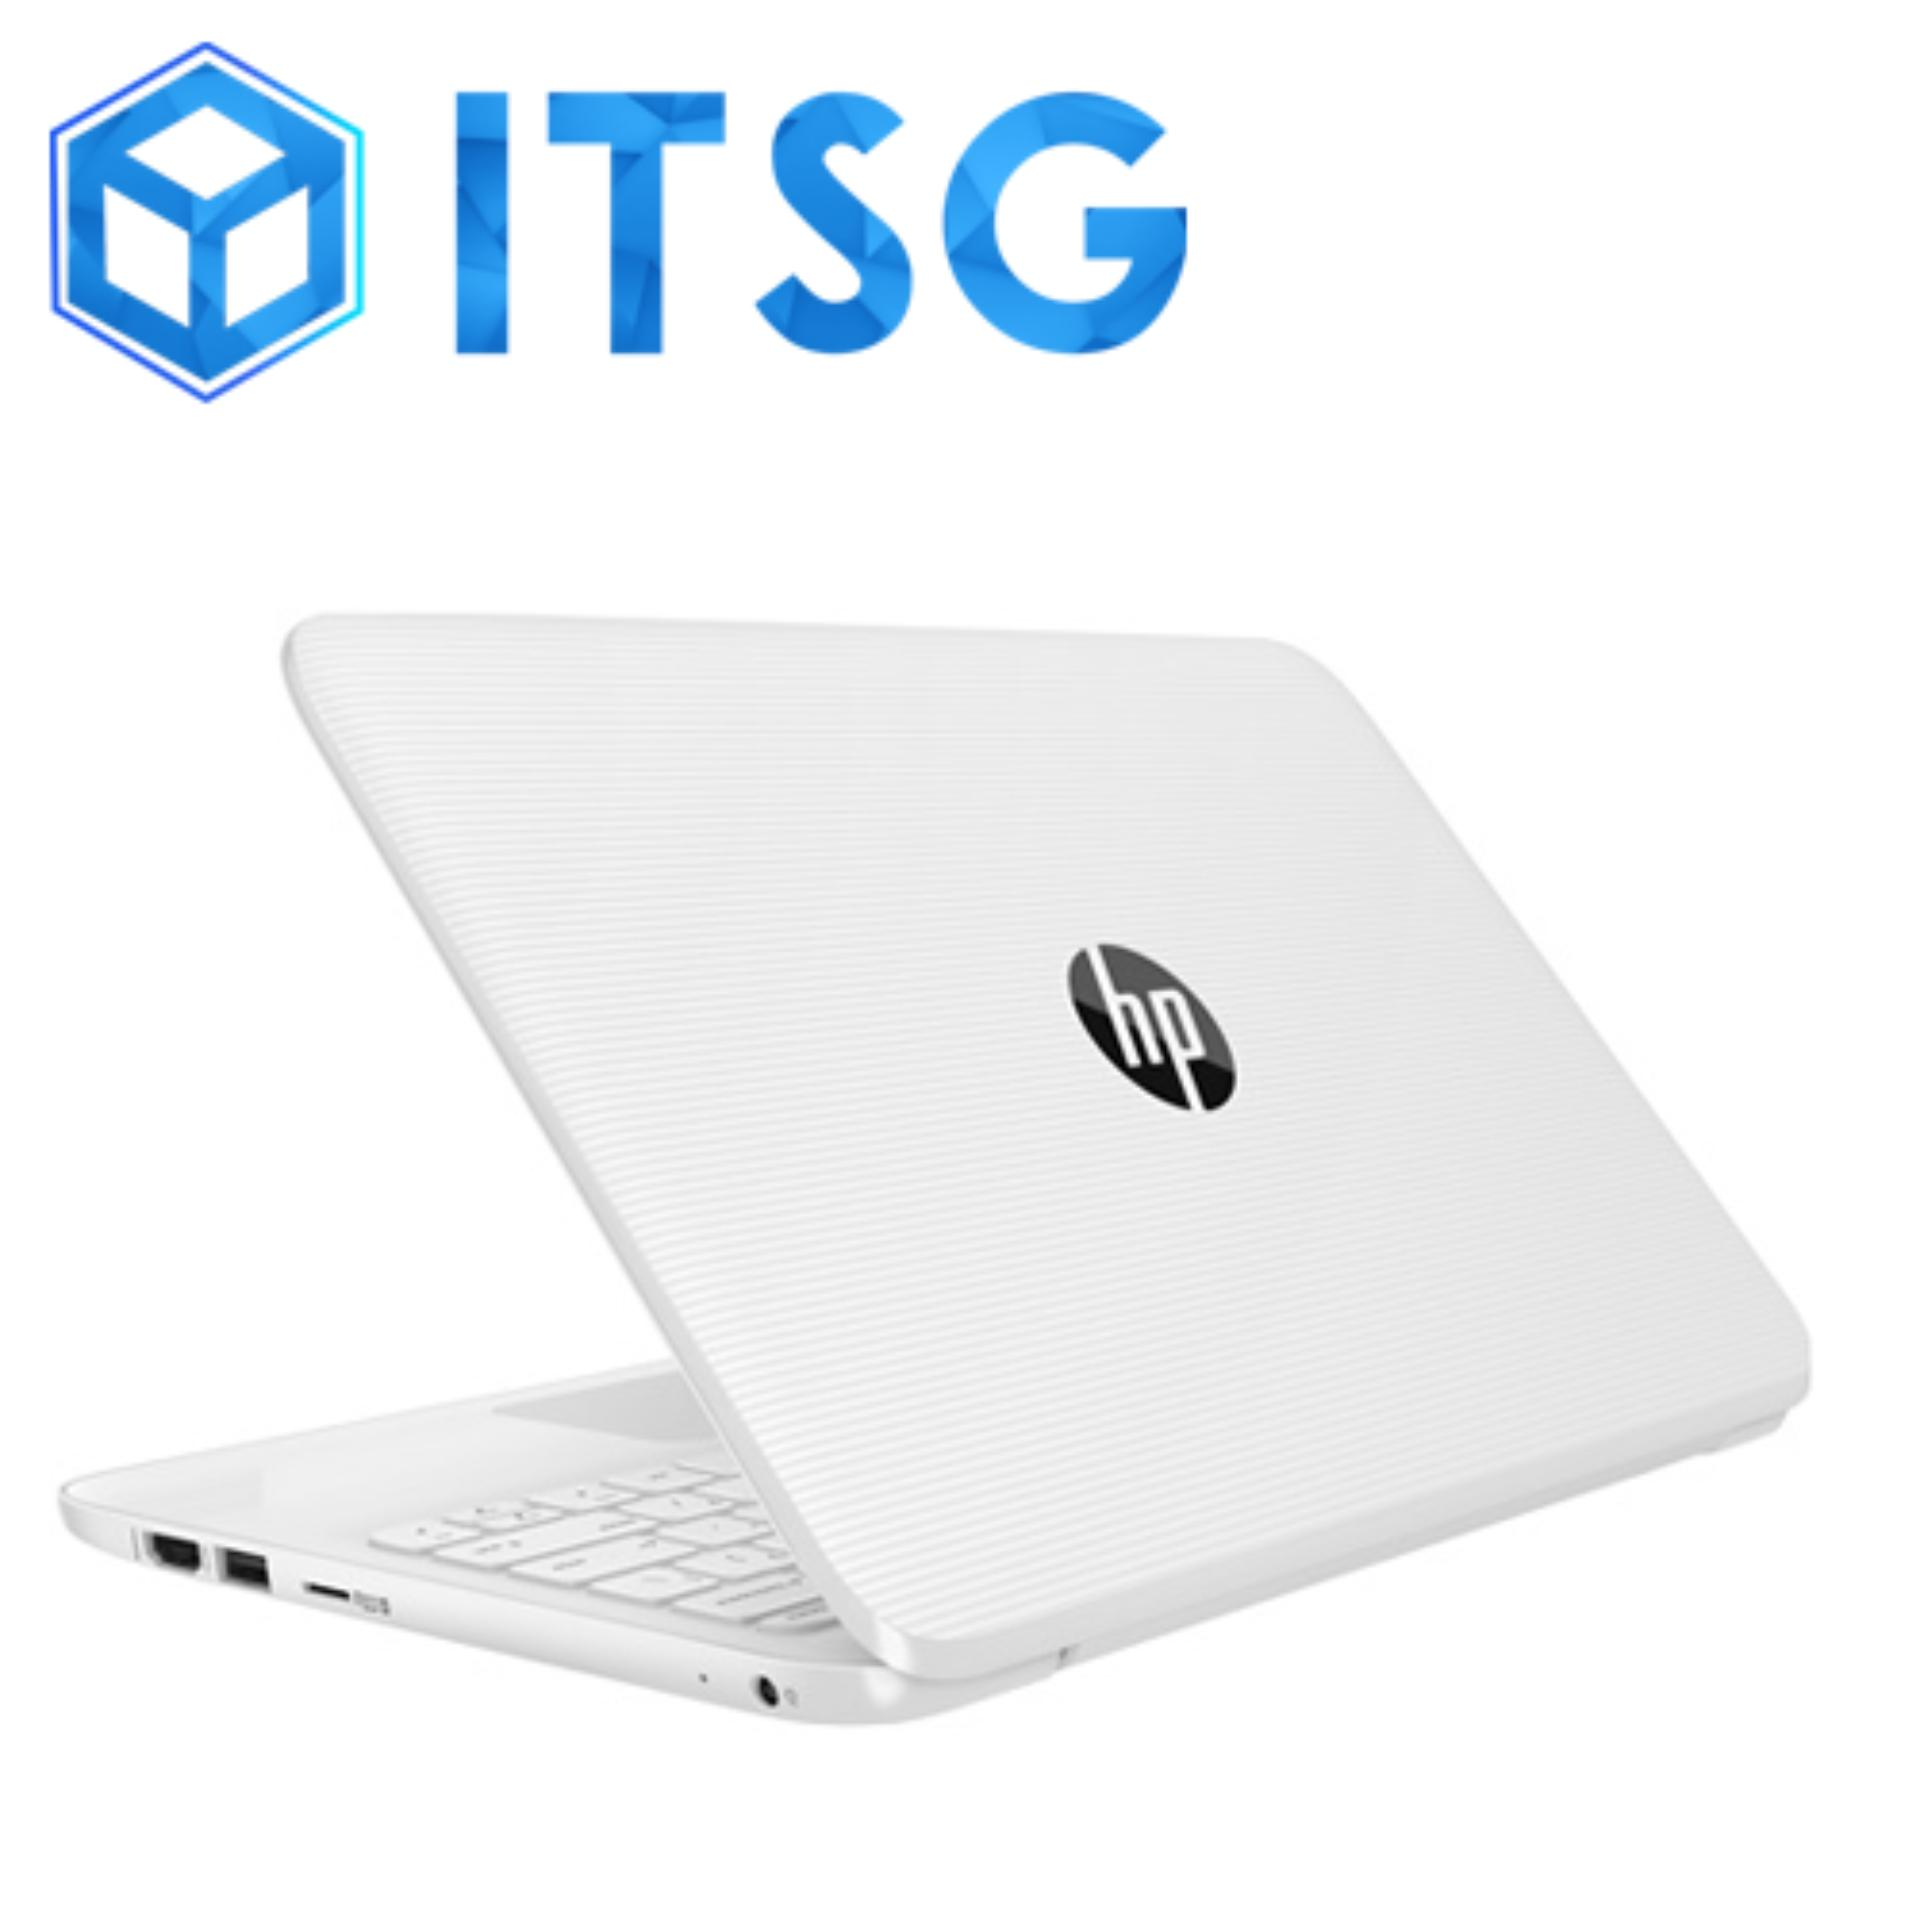 HP Stream Laptop 11-y022TU / Laptop / Notebook / Computer / Portable / Windows / Business Use